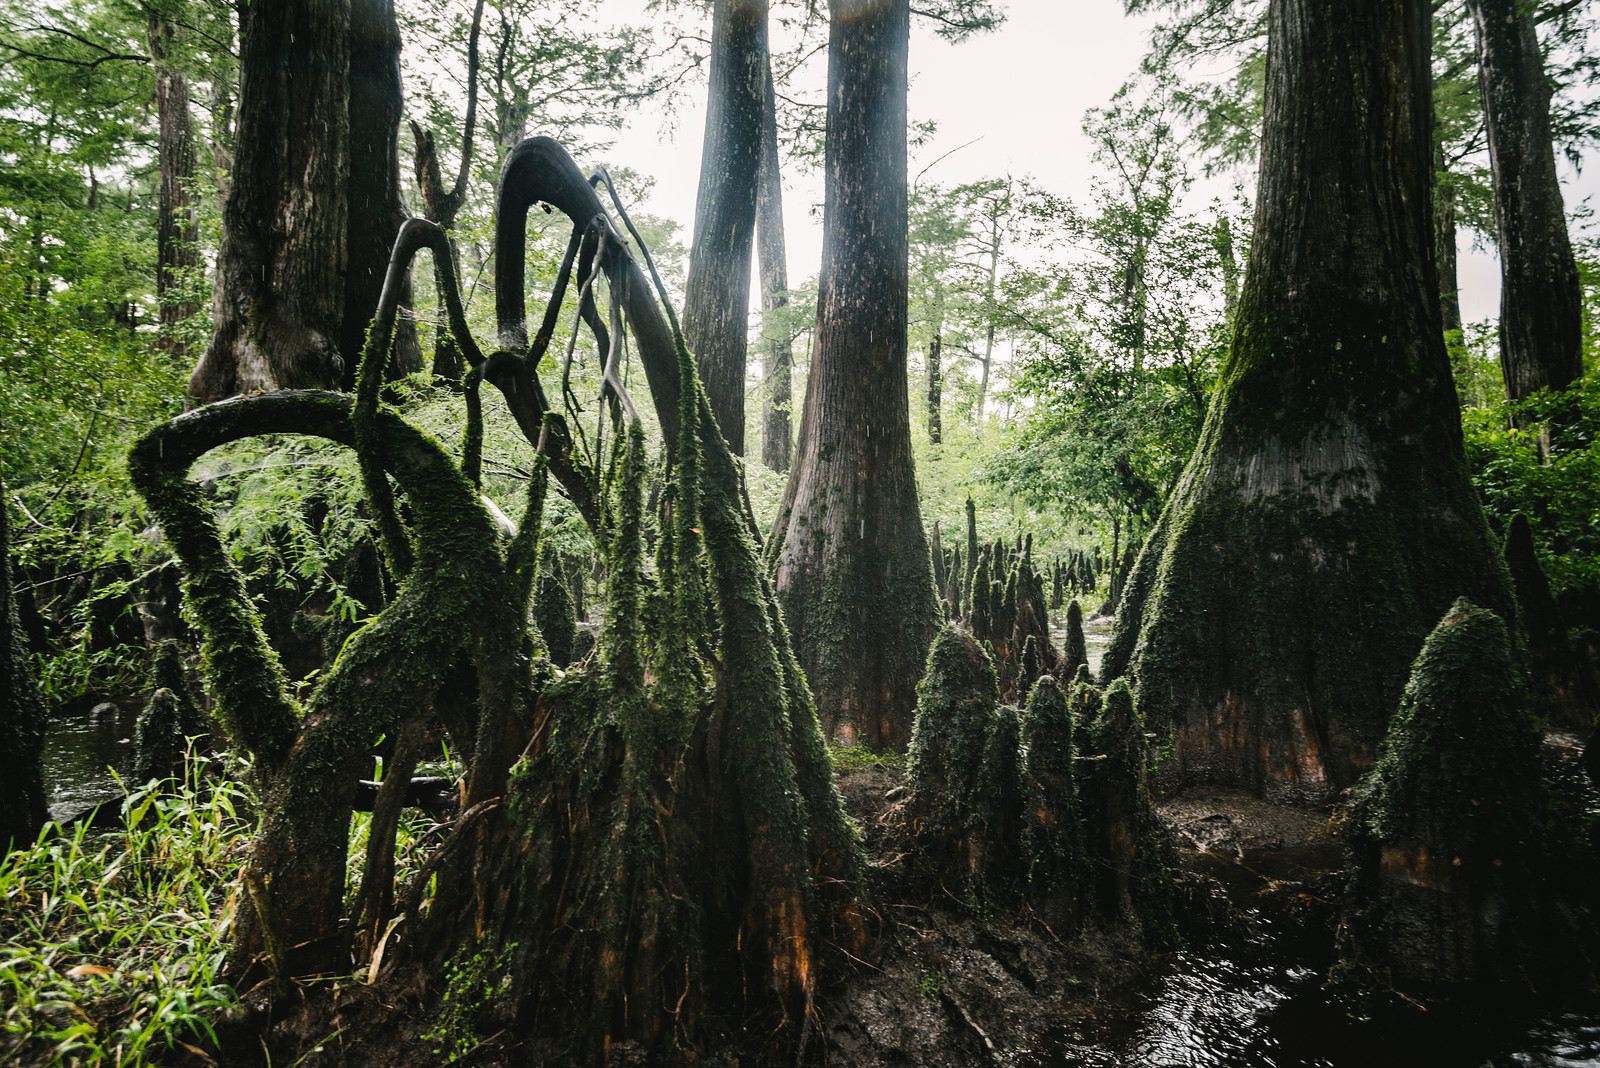 """The Three Sisters Swamp is the remnant of an ancient Baldcypress forest along the Black River, some 10 miles north of Wilmington. The only way in is by boat, and navigating through the twisted channels and man-sized cypress knees in low water is more like caving than paddling. There are """"hundreds"""" of millenial-aged trees here, making it the oldest remaining cypress forest in the world. It's a truly primeval place"""